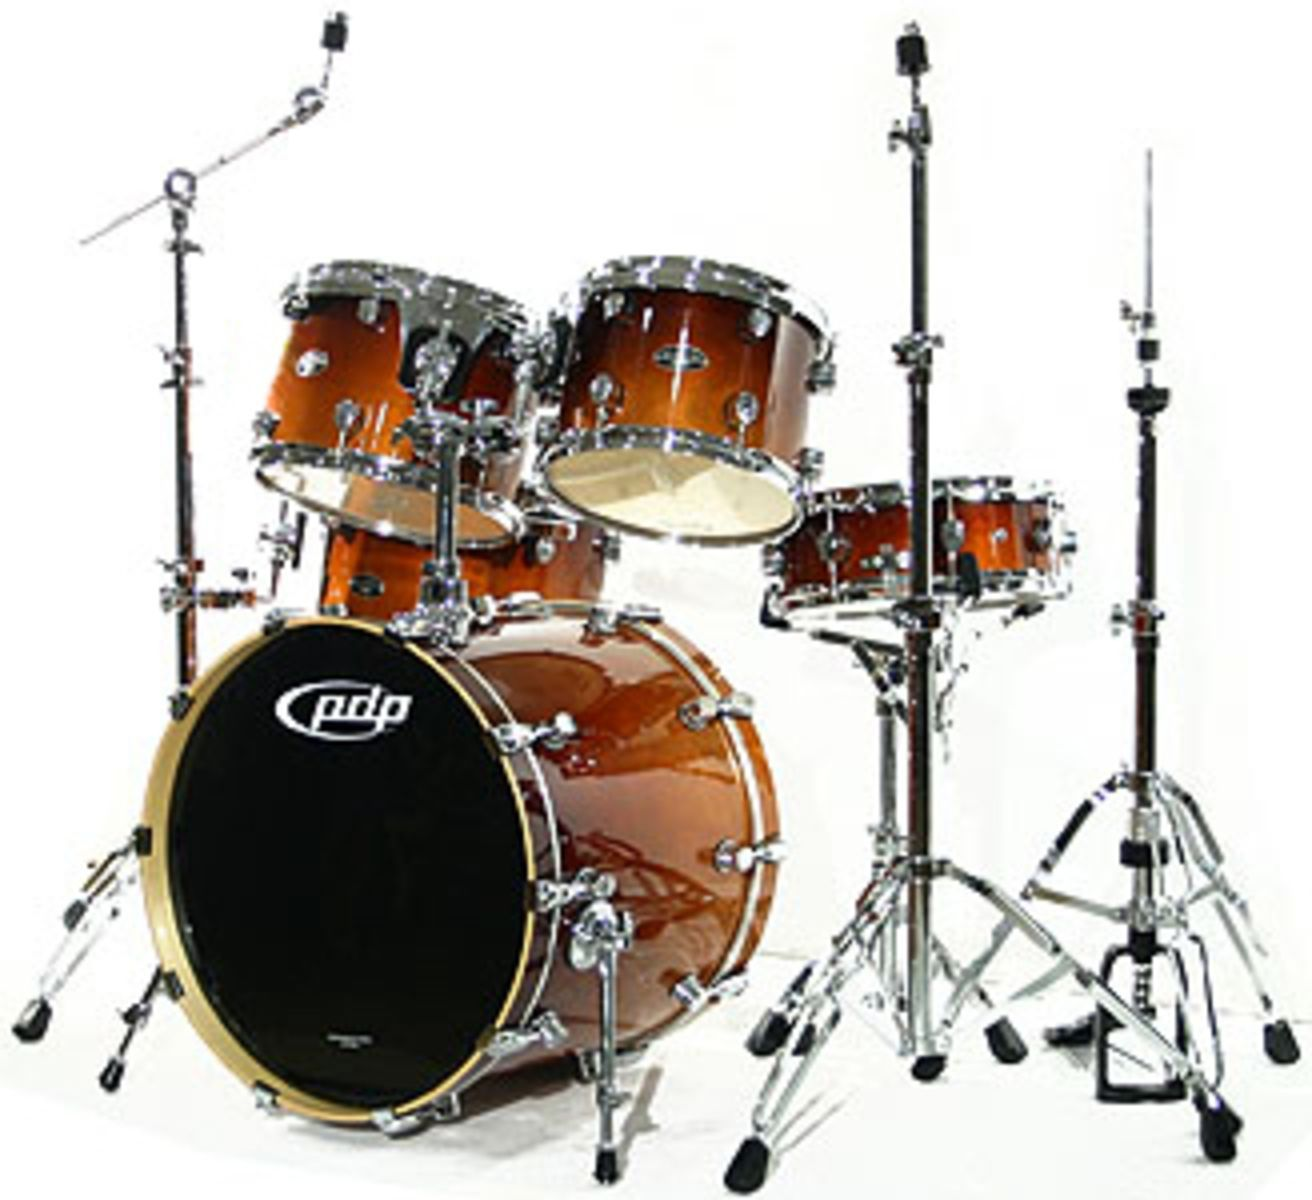 pdp pacific drums and percussion fx image 18139 audiofanzine. Black Bedroom Furniture Sets. Home Design Ideas